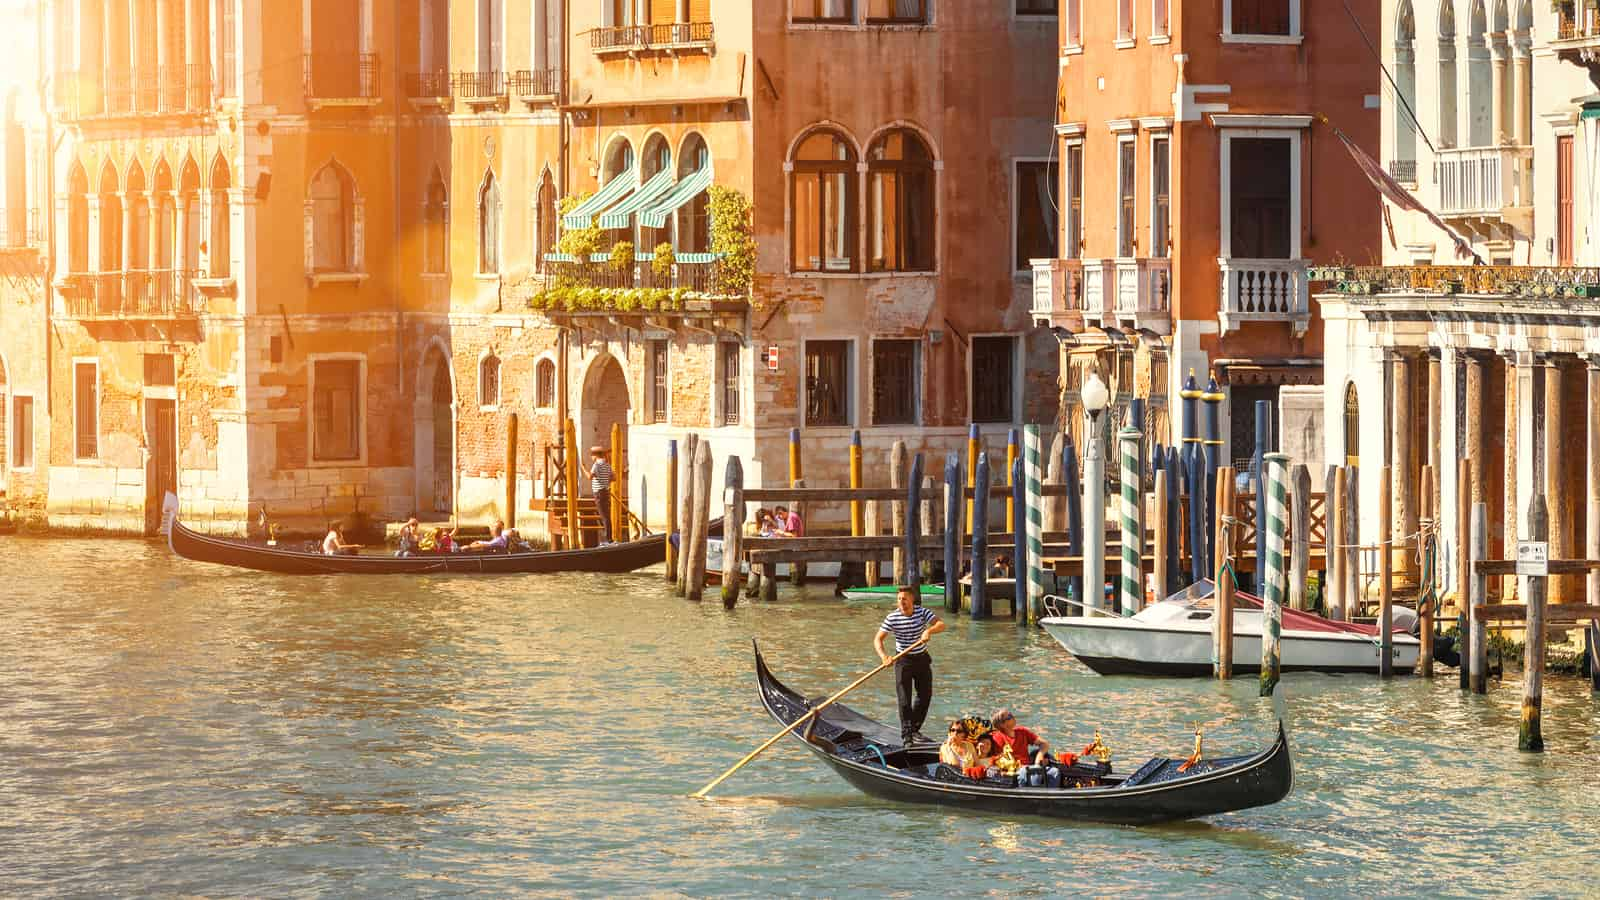 Venice, Italy - May 21, 2017: Gondolas with tourists sailing along the Grand Canal in Venice. Romantic water trip on a gondola in beautiful Venice. Panoramic sunny view of old street of Venice. one of the most romantic things to do in venice